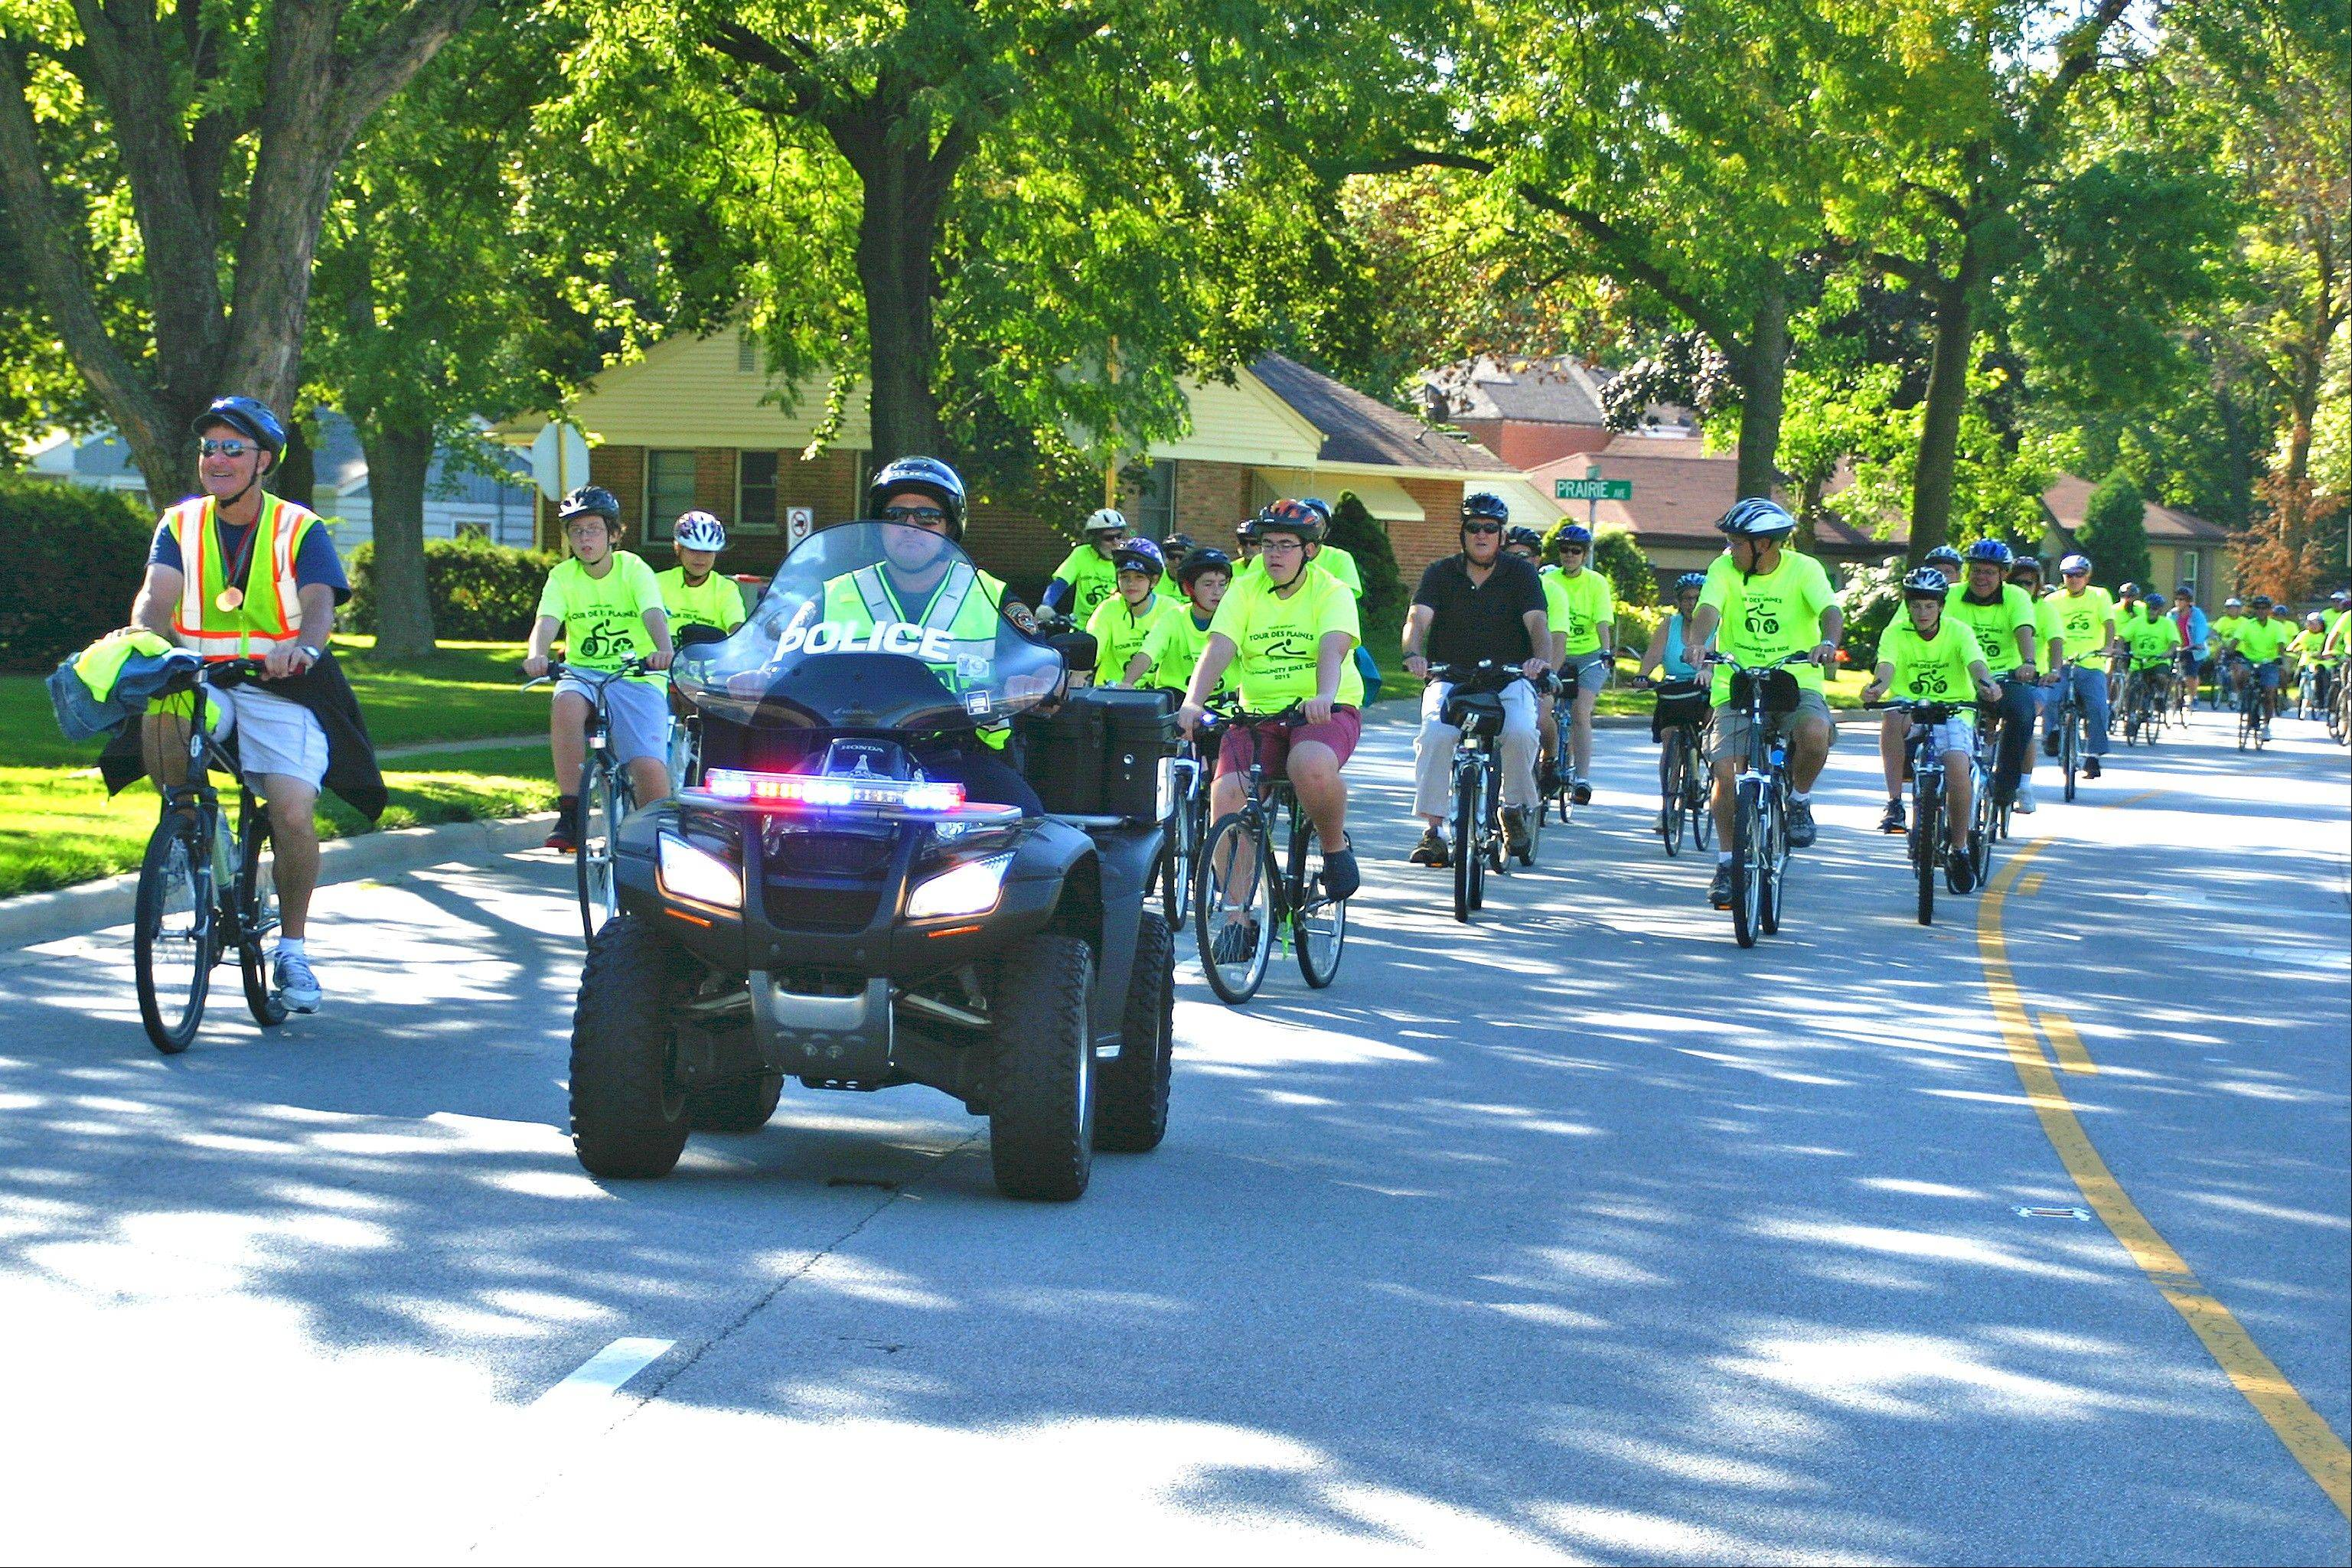 The annual Tour Des Plaines Bike Ride, which drew about 300 participants Saturday morning, makes its way north on Wolf Road towards its first rest stop at West Park. The Tour is nine miles, ending with a beautiful ride up the bike trail around Lake Opeka.